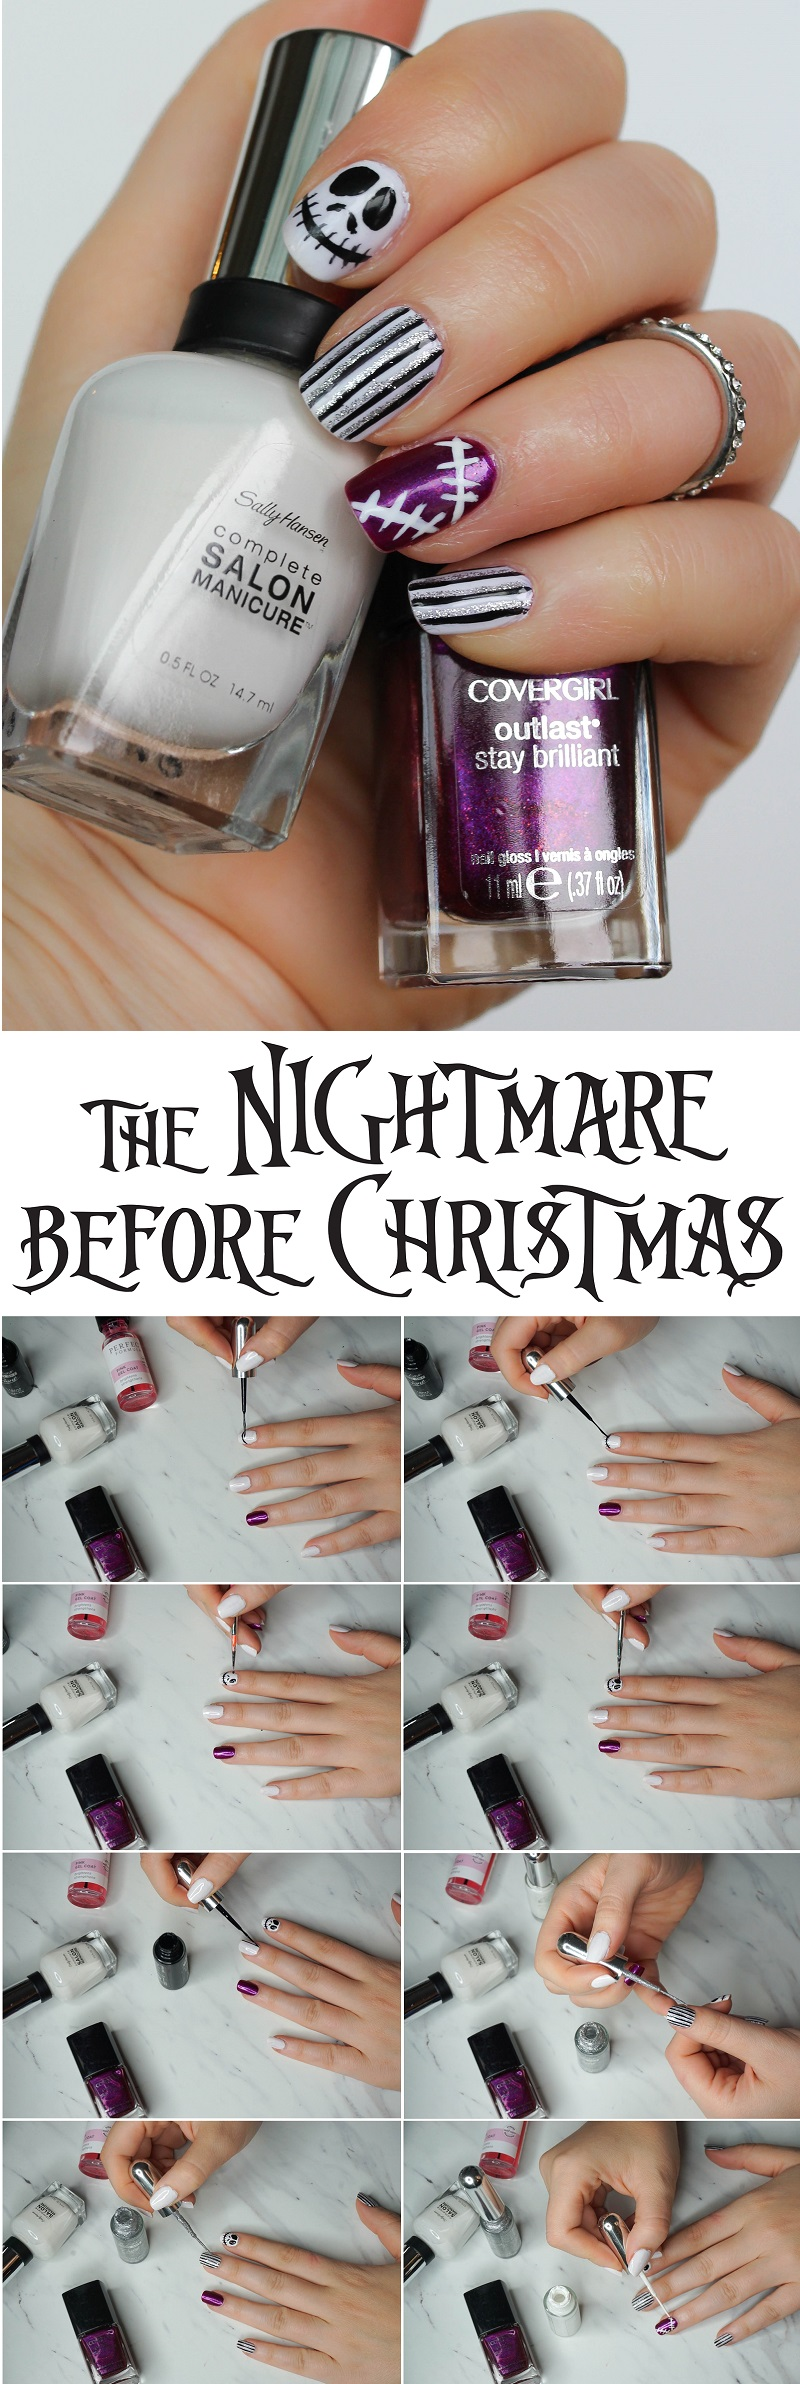 Step-by-Step Nightmare Before Christmas Manicure Tutorial Halloween Sally Hansen Complete Salon Manicure Let's Snow Covergirl Outlast Say Brilliant Polish Fuchsia Flame